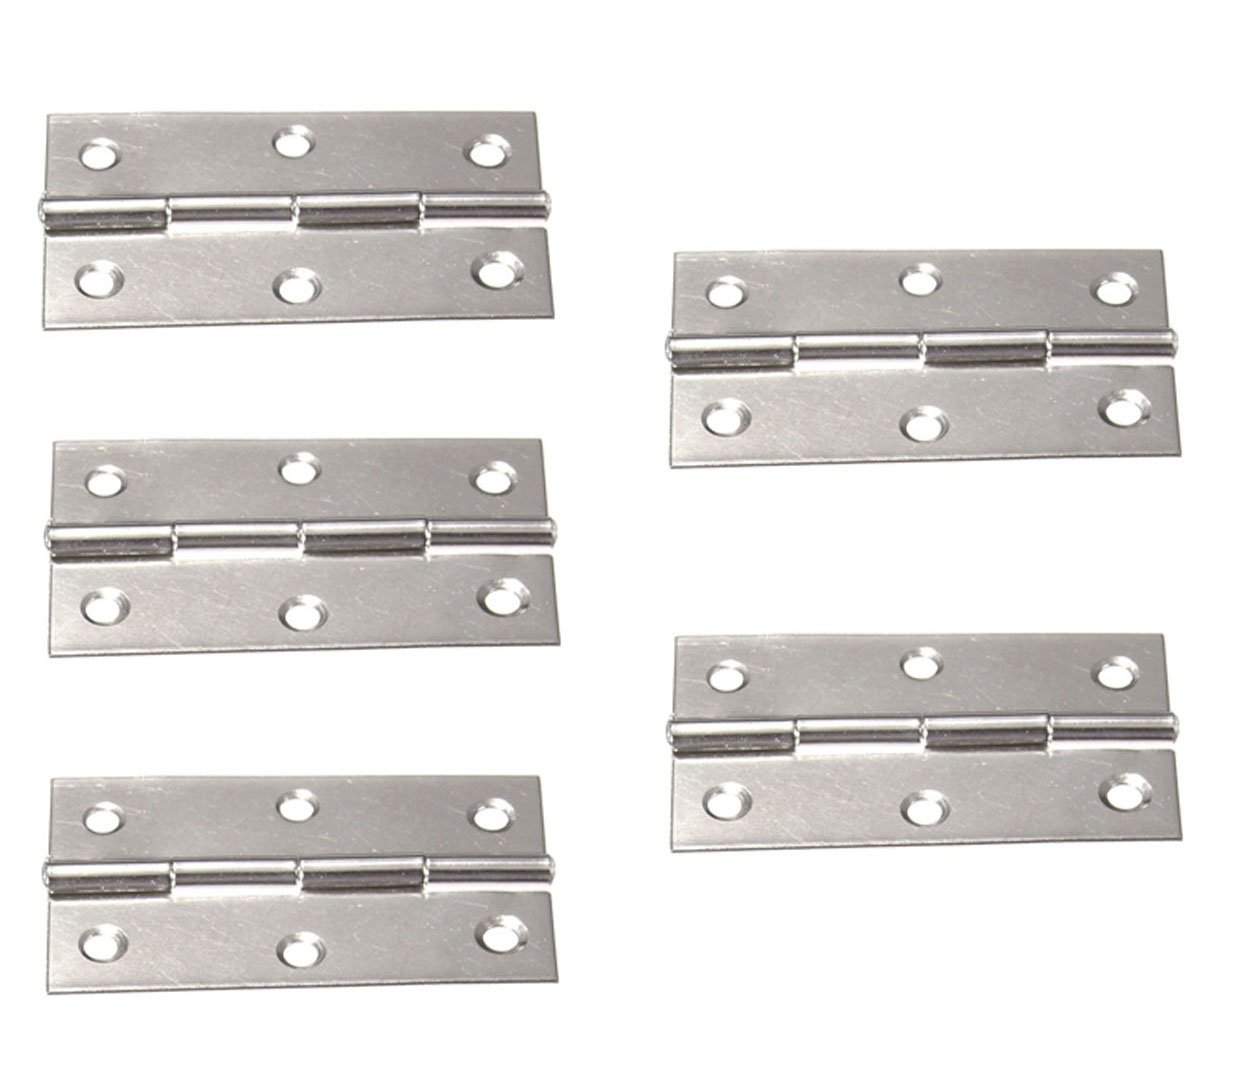 SummerHome 5Pcs 3'' 6 Mounting Holes Stainless Steel Boat Marine Cabinet Drawer Door Butt Hinges With Screws